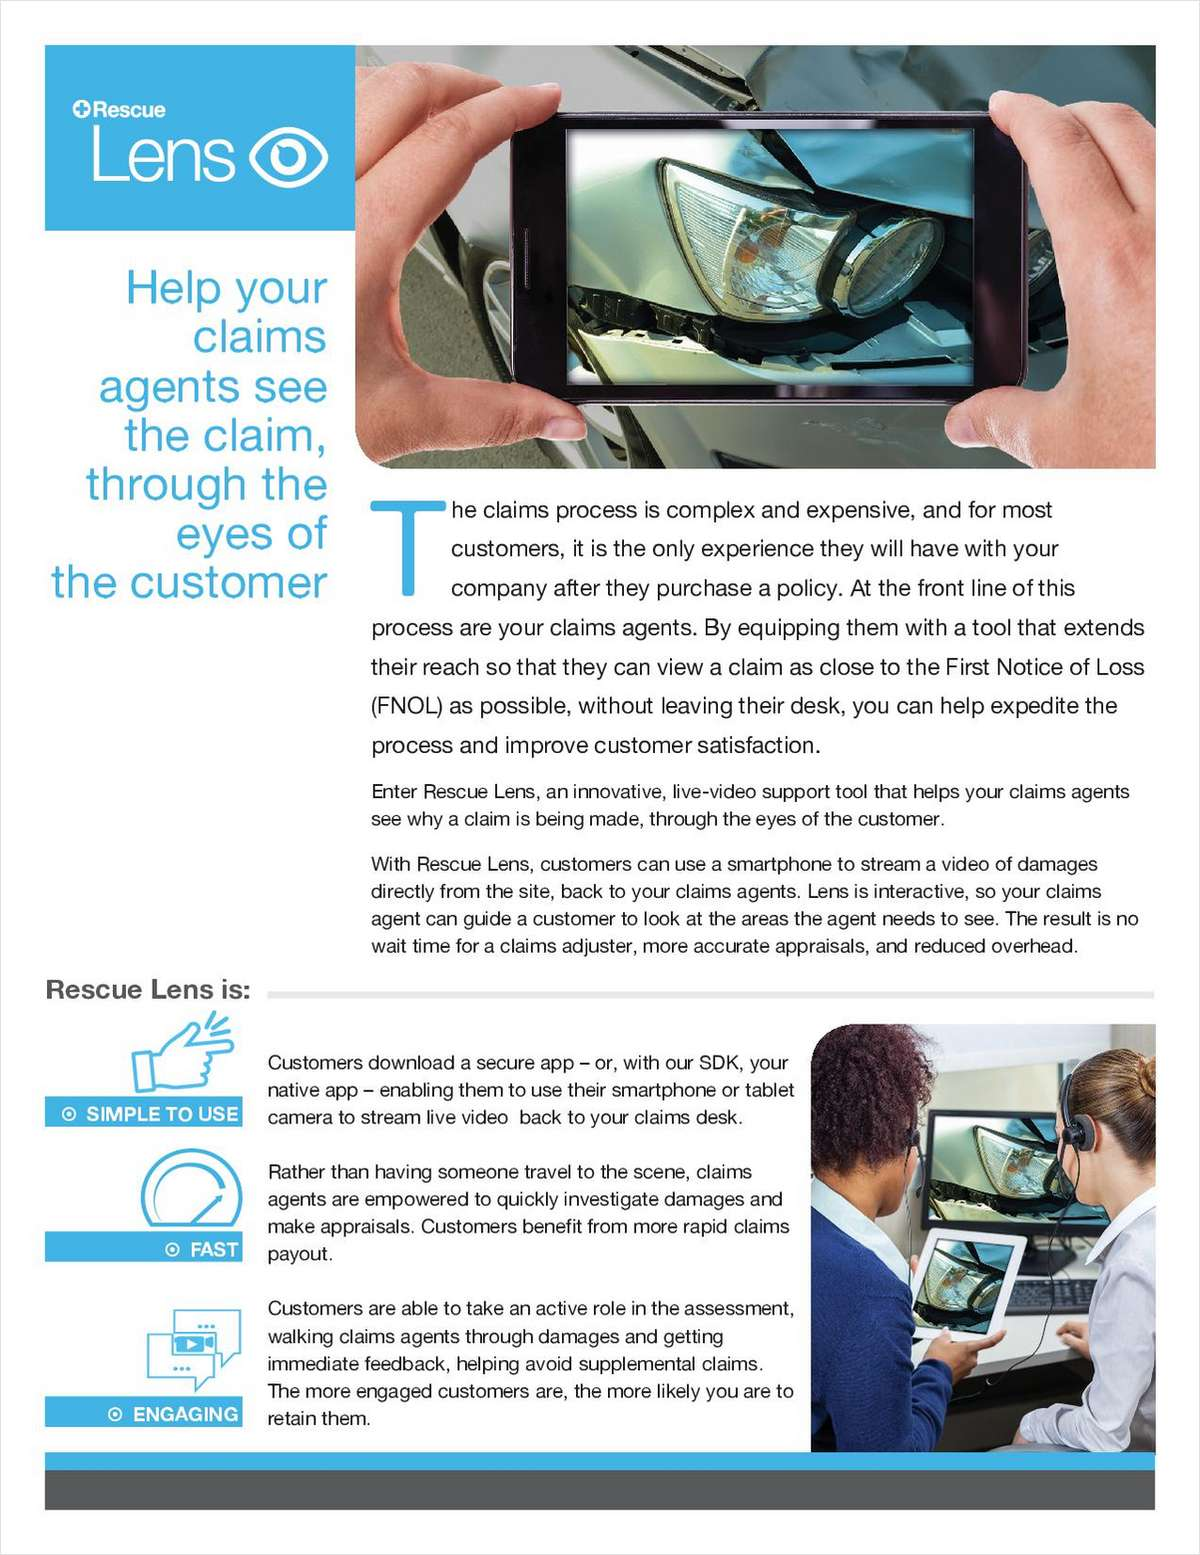 Rescue lens cutting costs improving efficiency increasing customer satisfaction request your free white paper